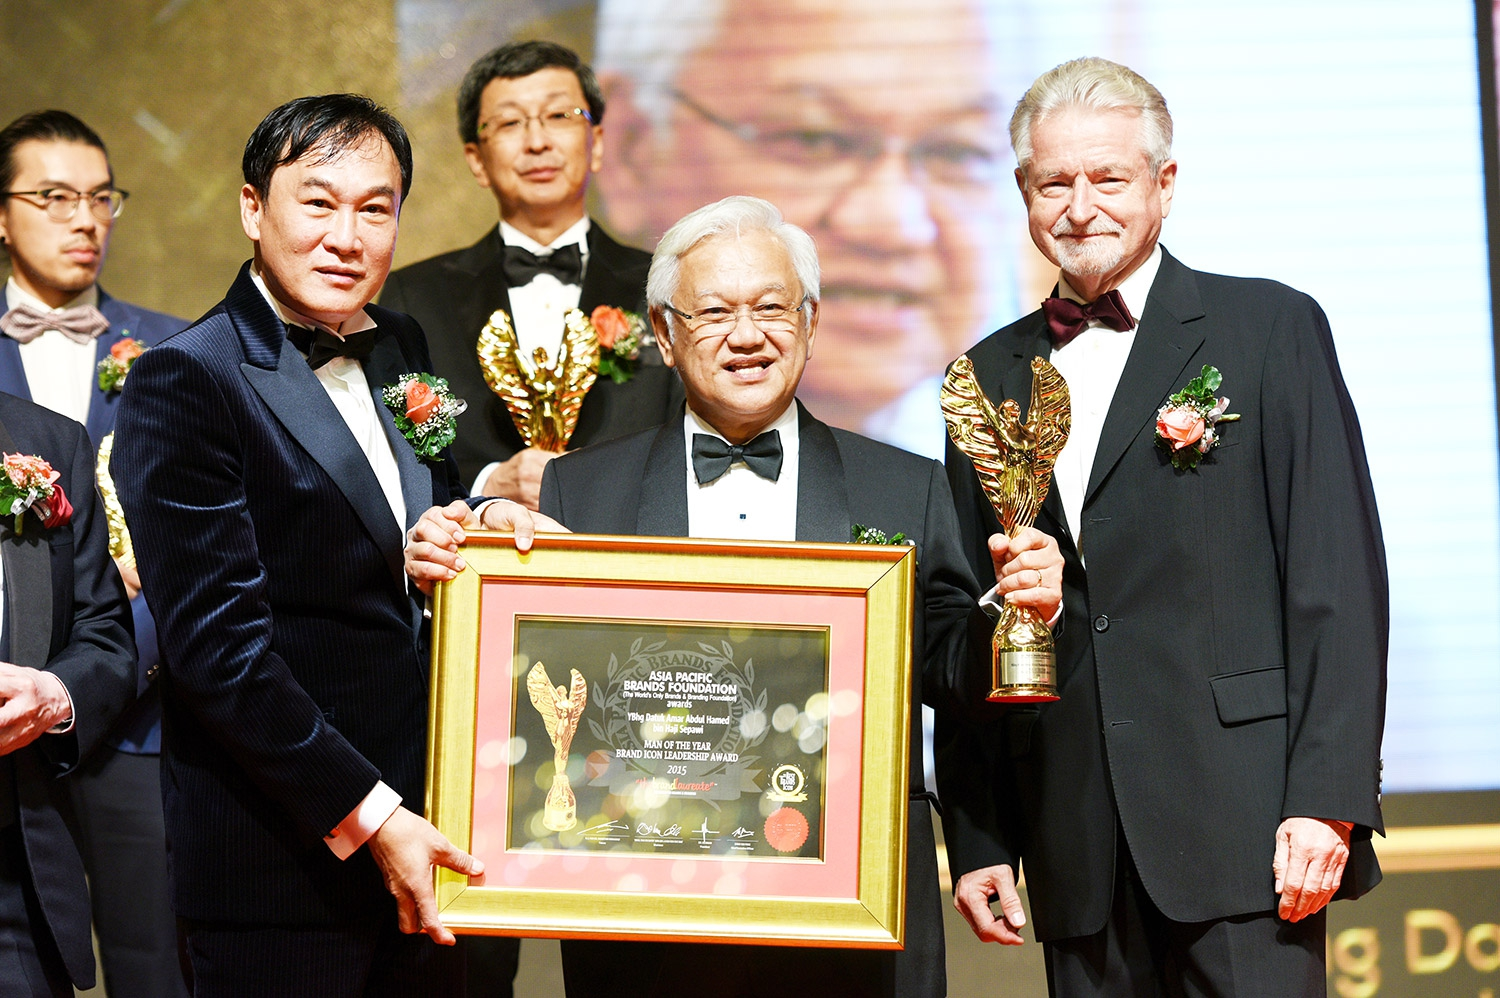 Our Chairman, Datuk Amar Hamed Sepawi adjudged BrandLaureate's 'Man of the Year' Brand Icon Leadership Award 2015